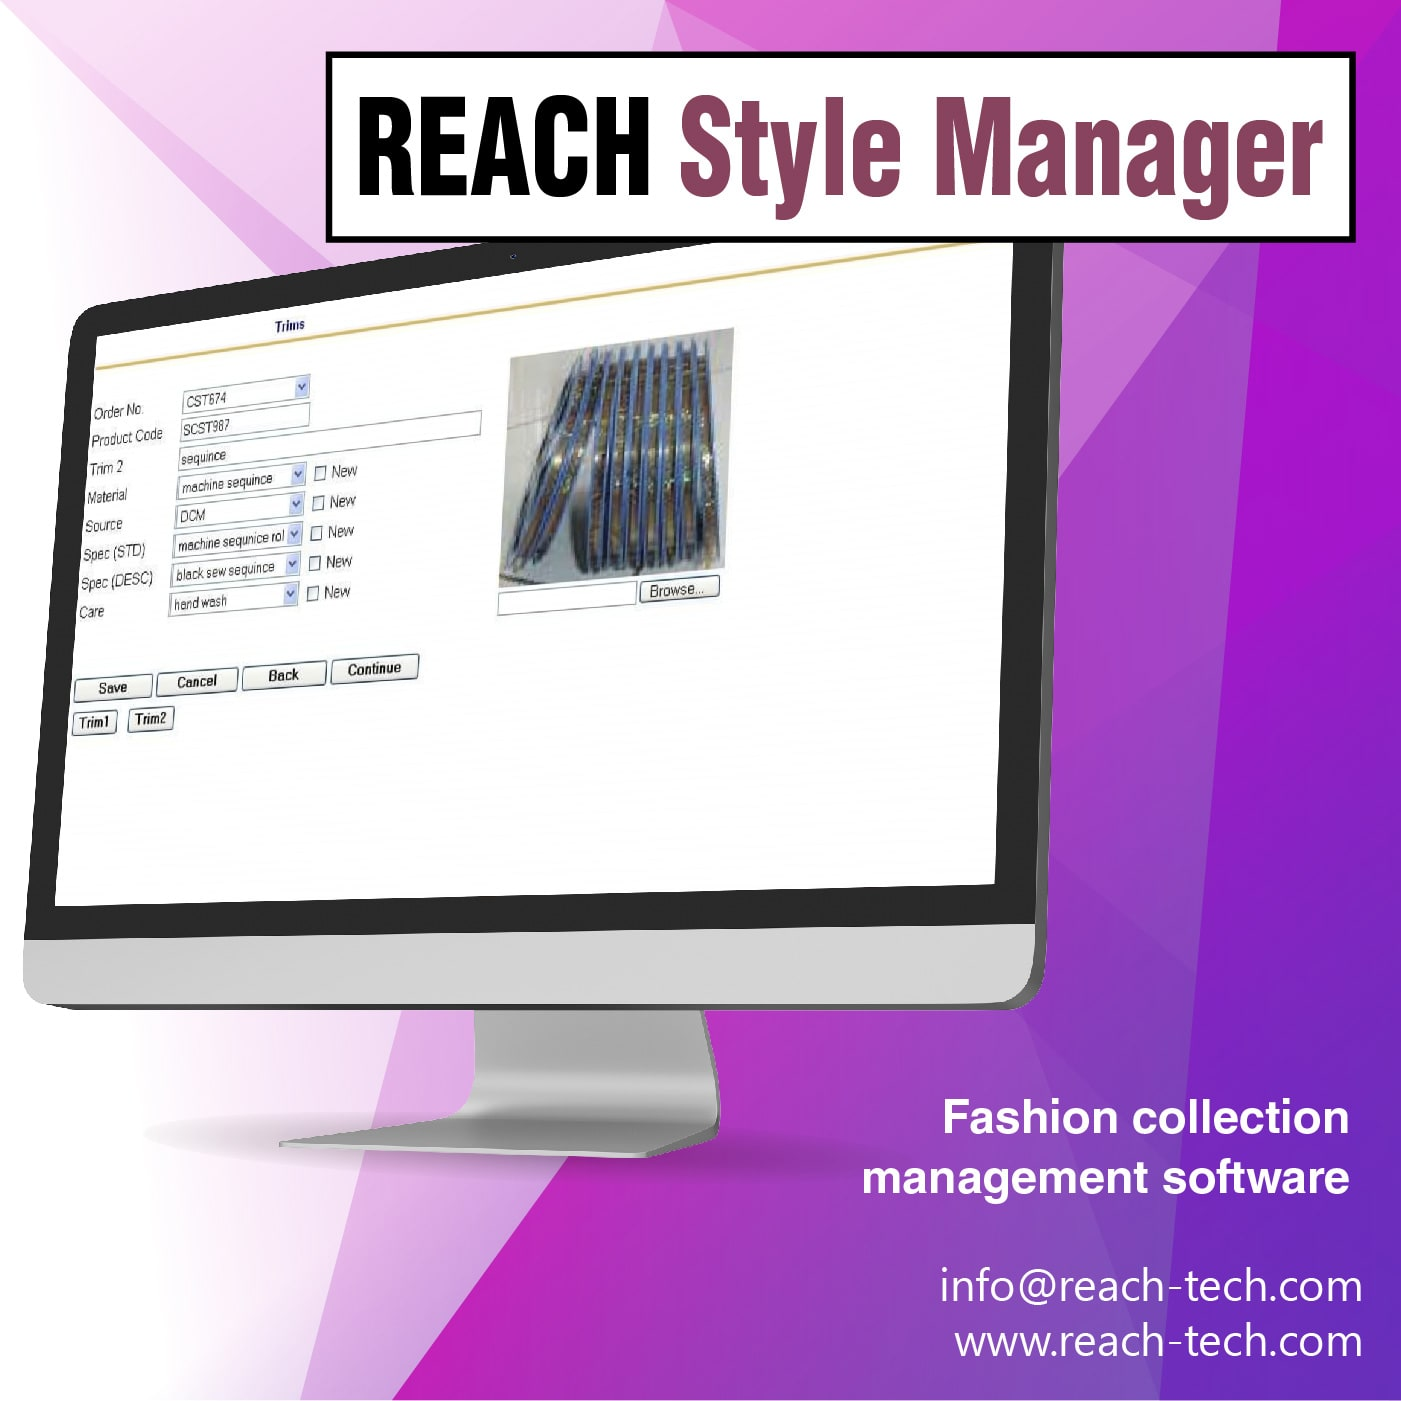 fashion-collection-management-software-4